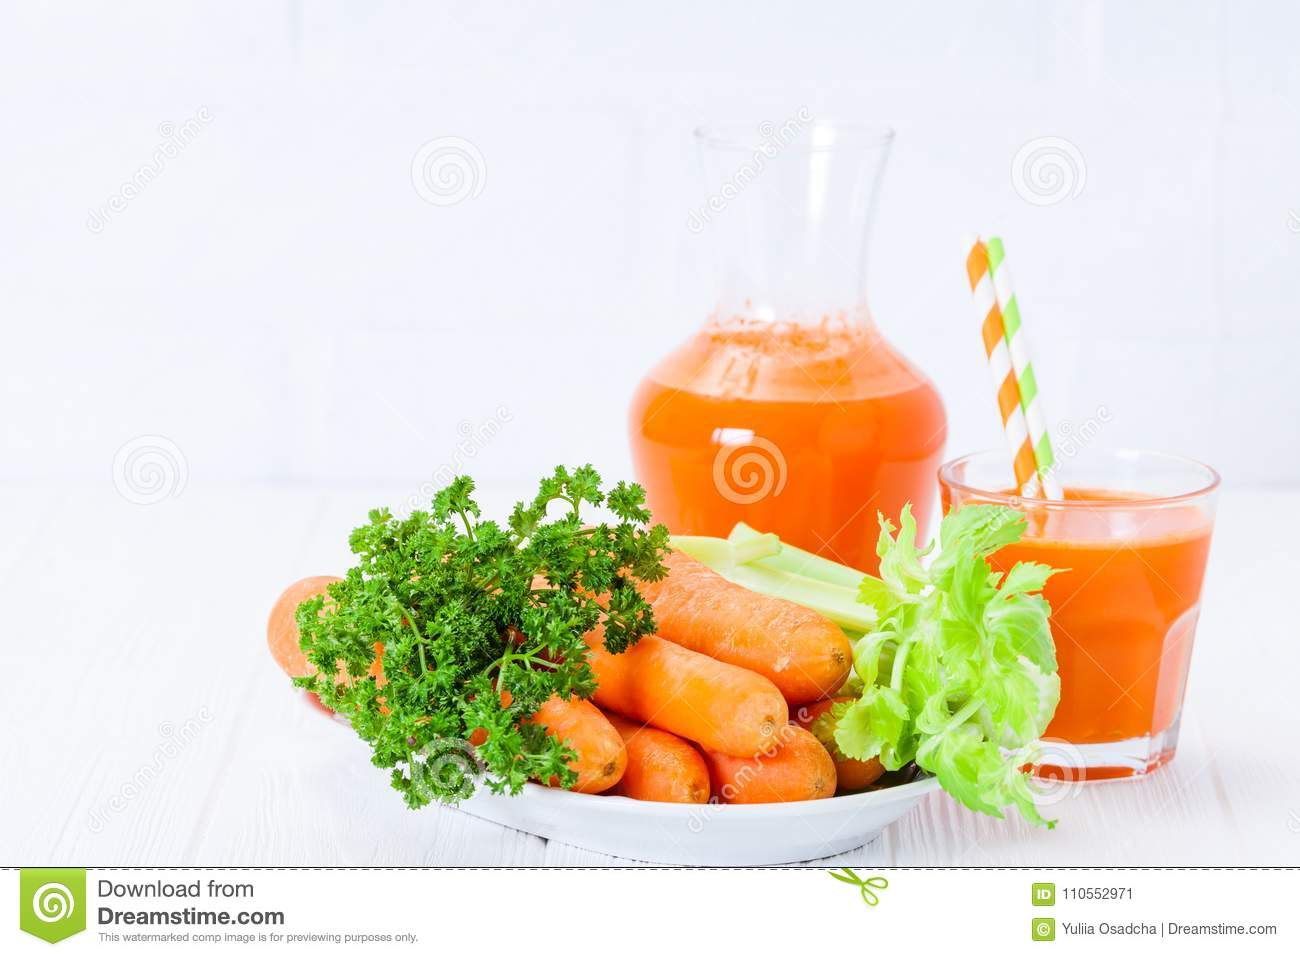 Discussion on this topic: Orange Juice And Green Veggies For Better , orange-juice-and-green-veggies-for-better/